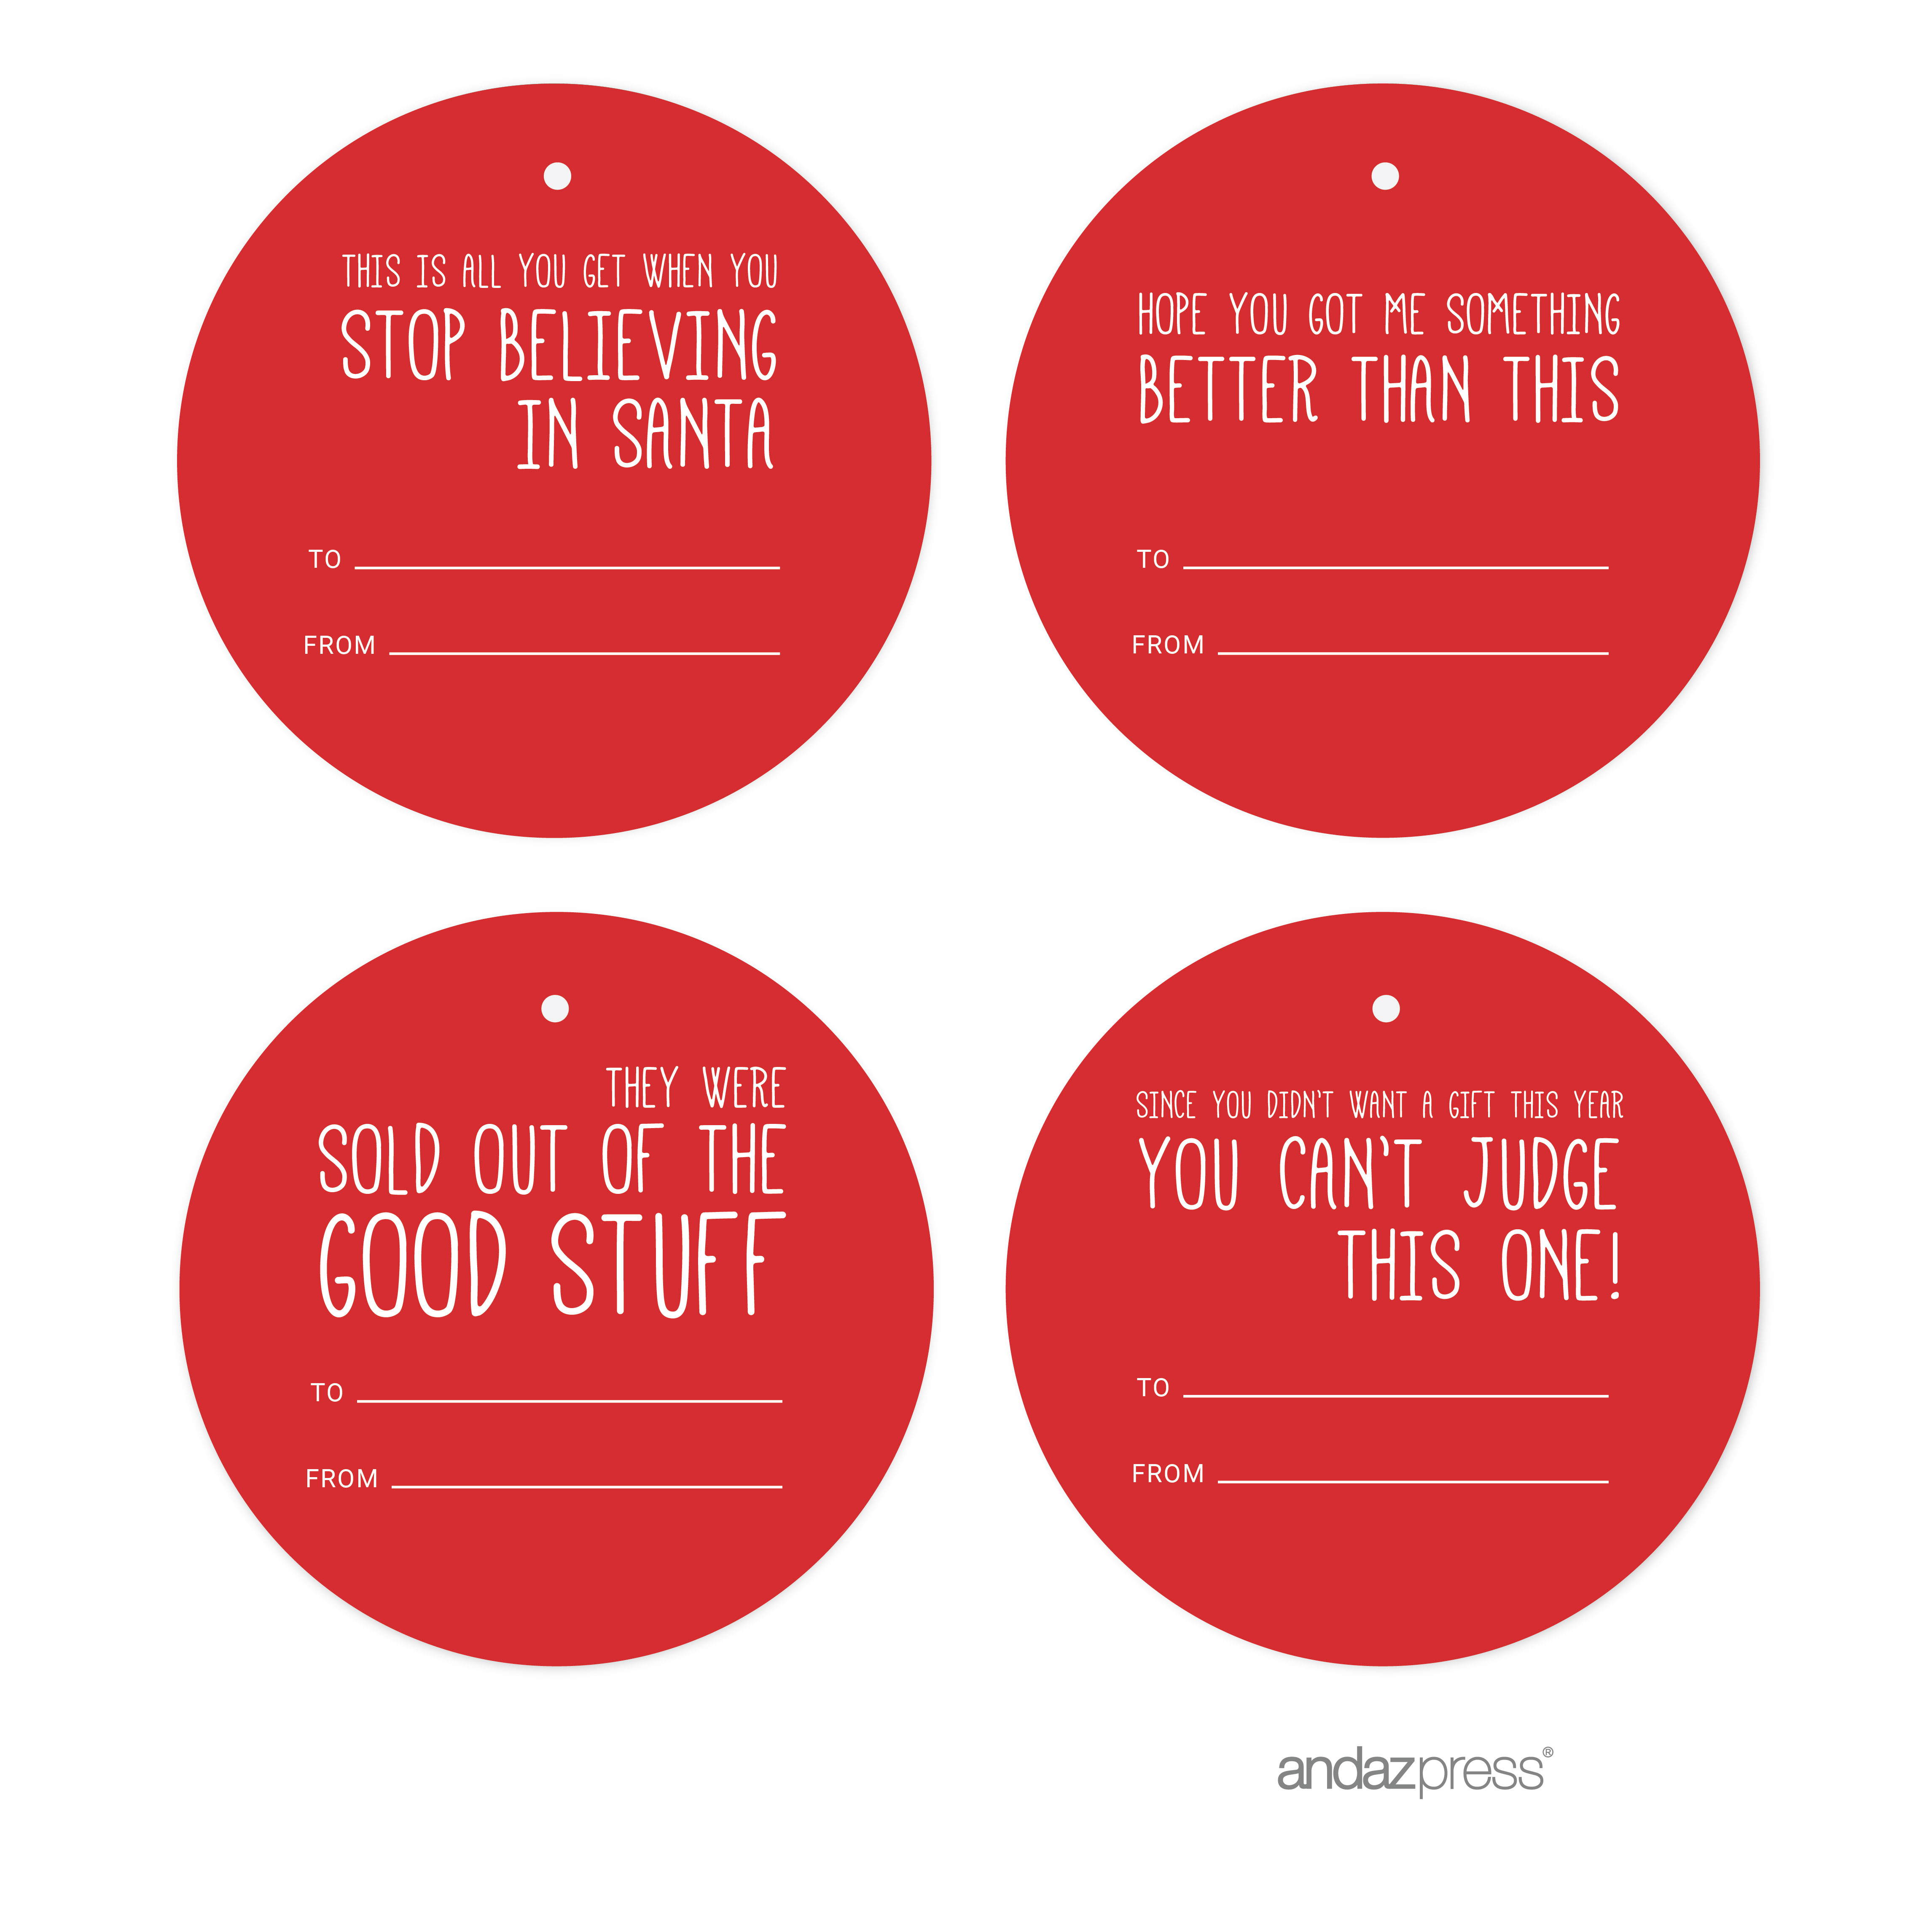 Red Funny & Witty Christmas Round Circle Gift Tags, 24-Pack